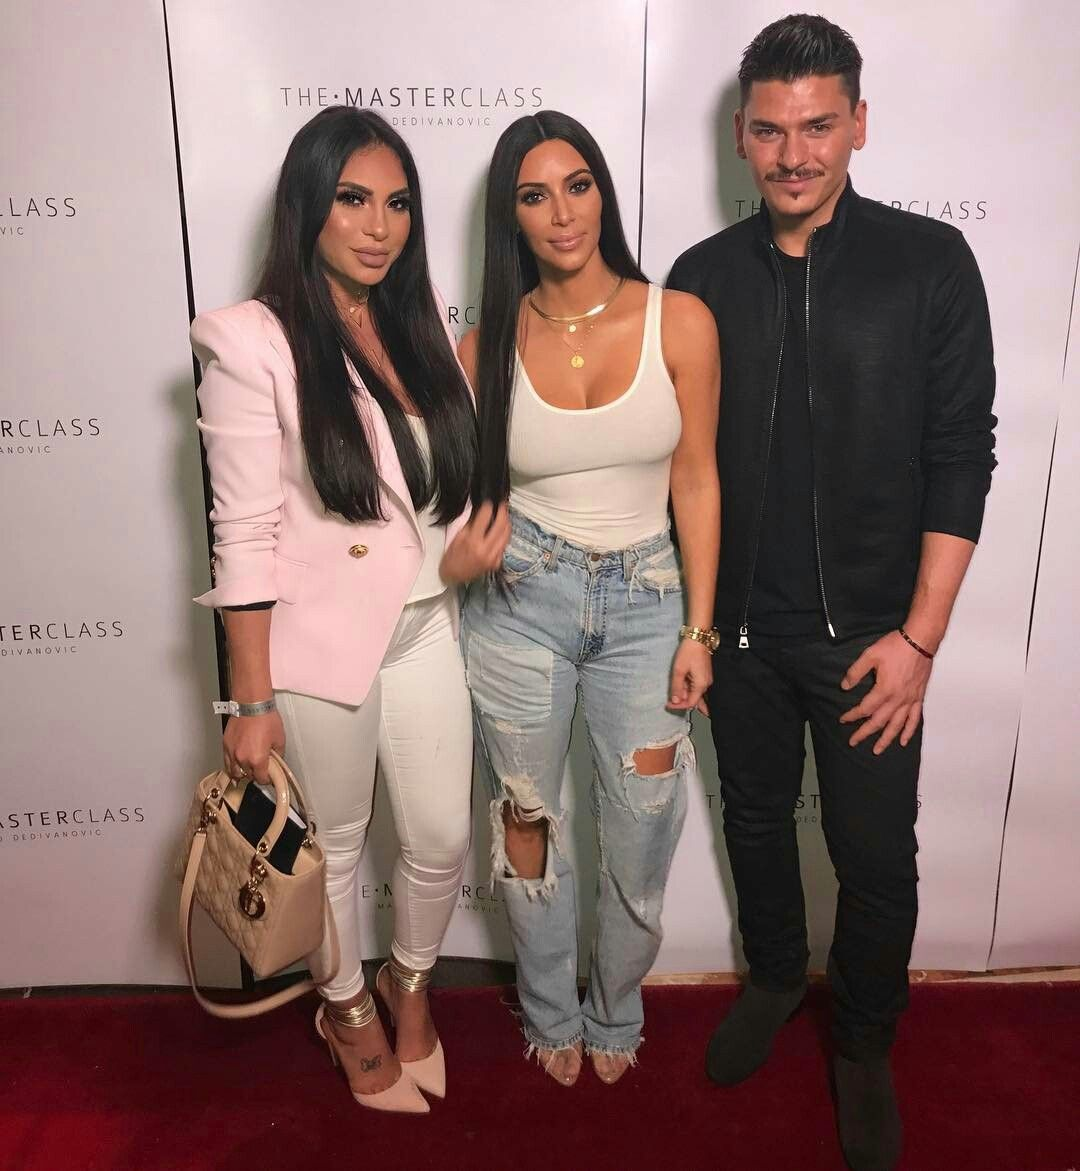 Kim kardashian kim kardashian outfits kardashian outfit